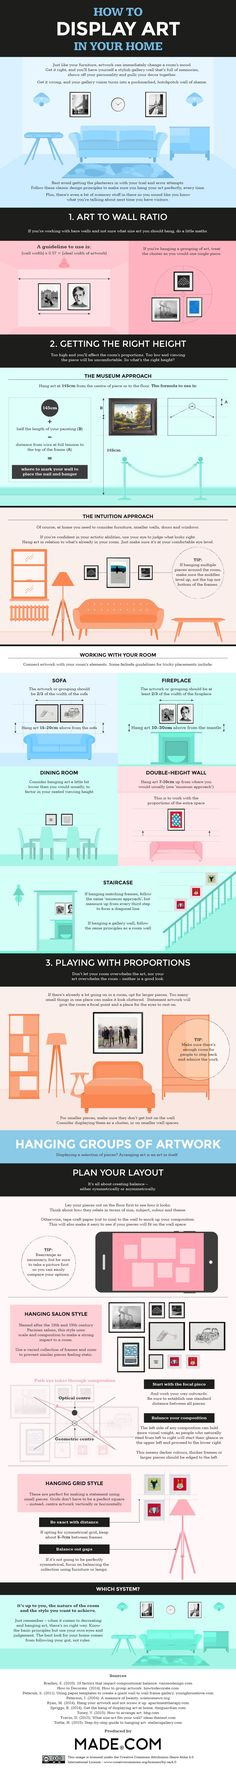 Infographic on how to display art in your home